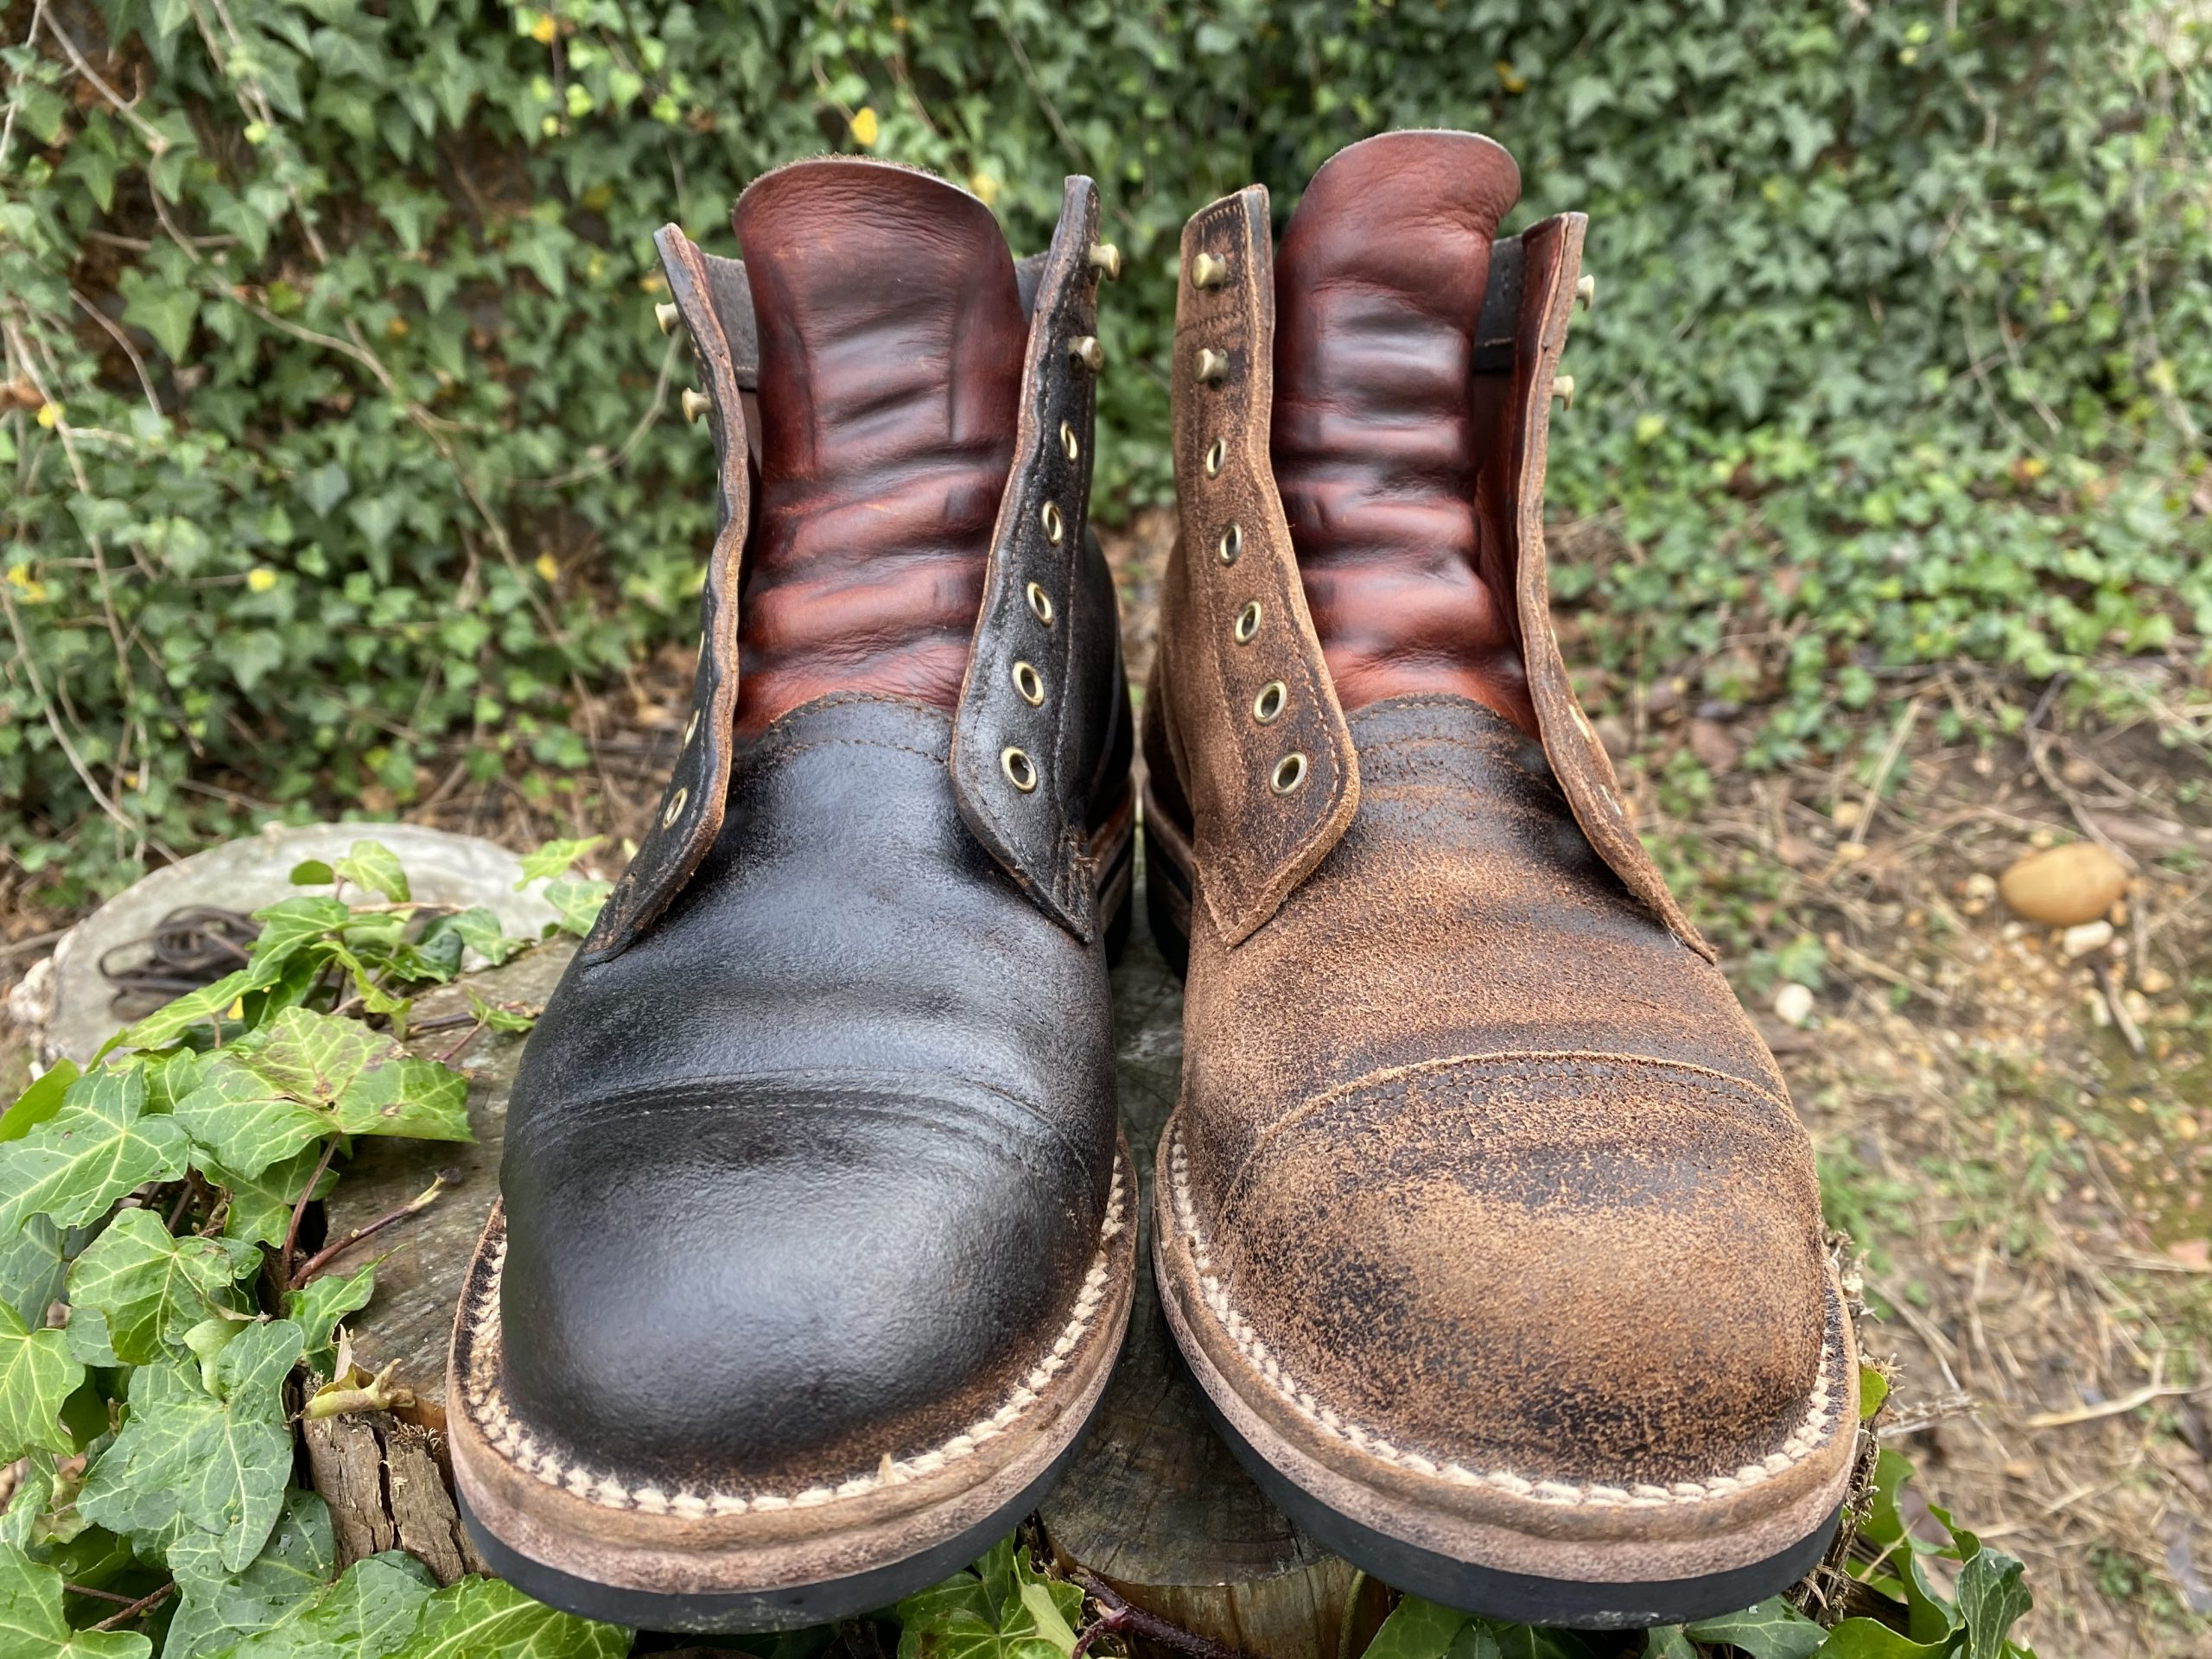 birchees leather conditioner before and after